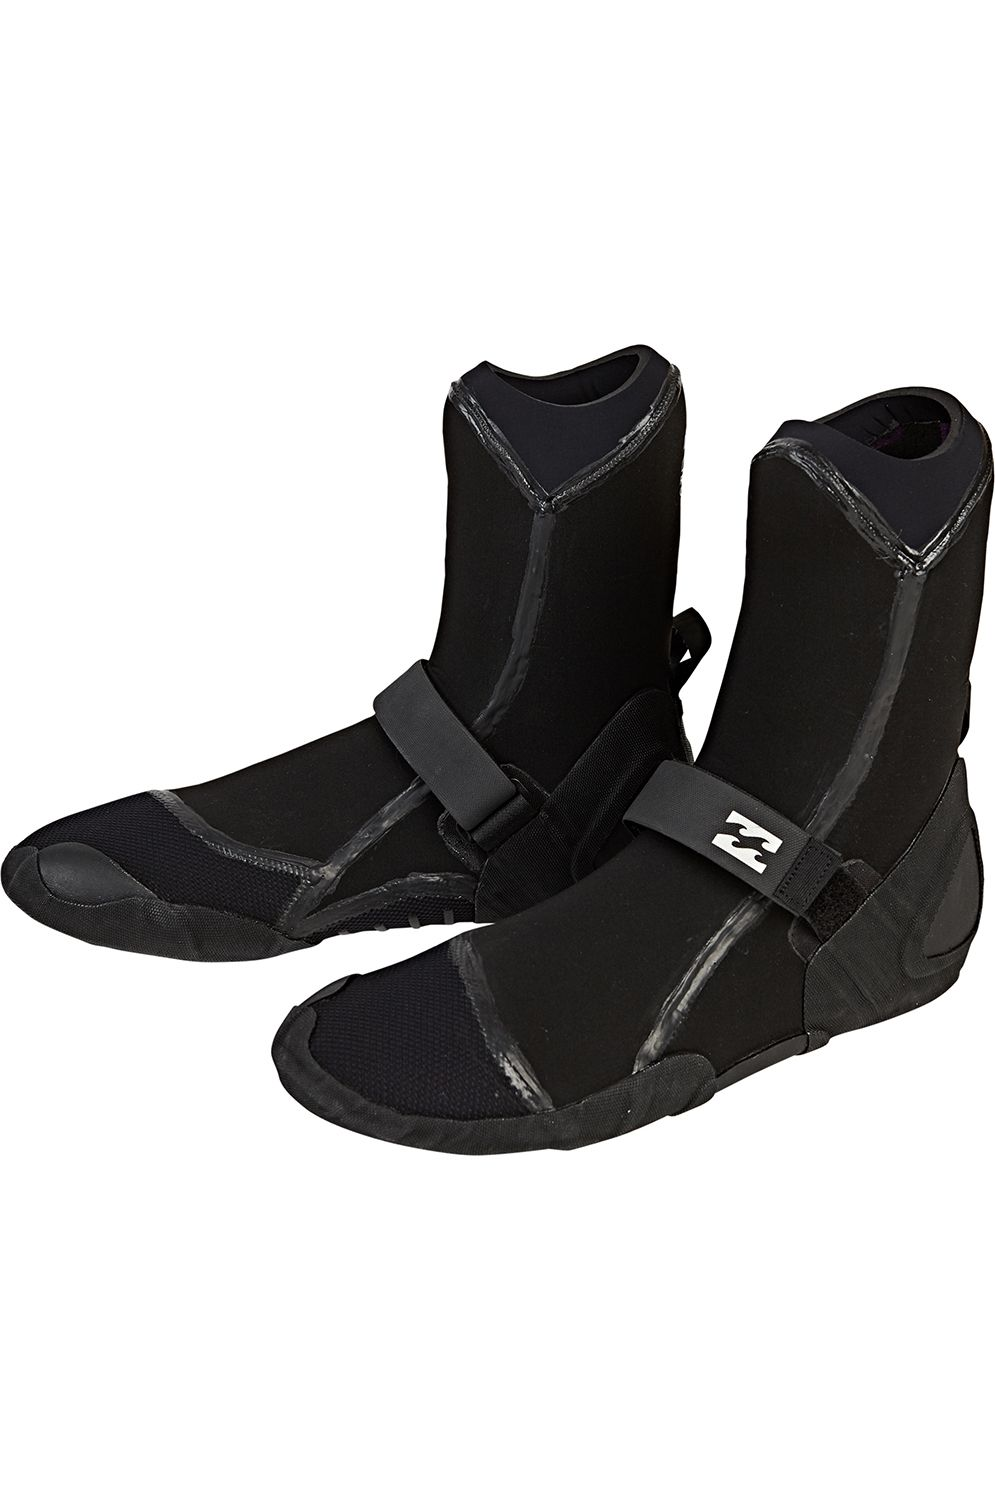 Botas Neoprene Billabong 5 FURN CARB ULT RT Black